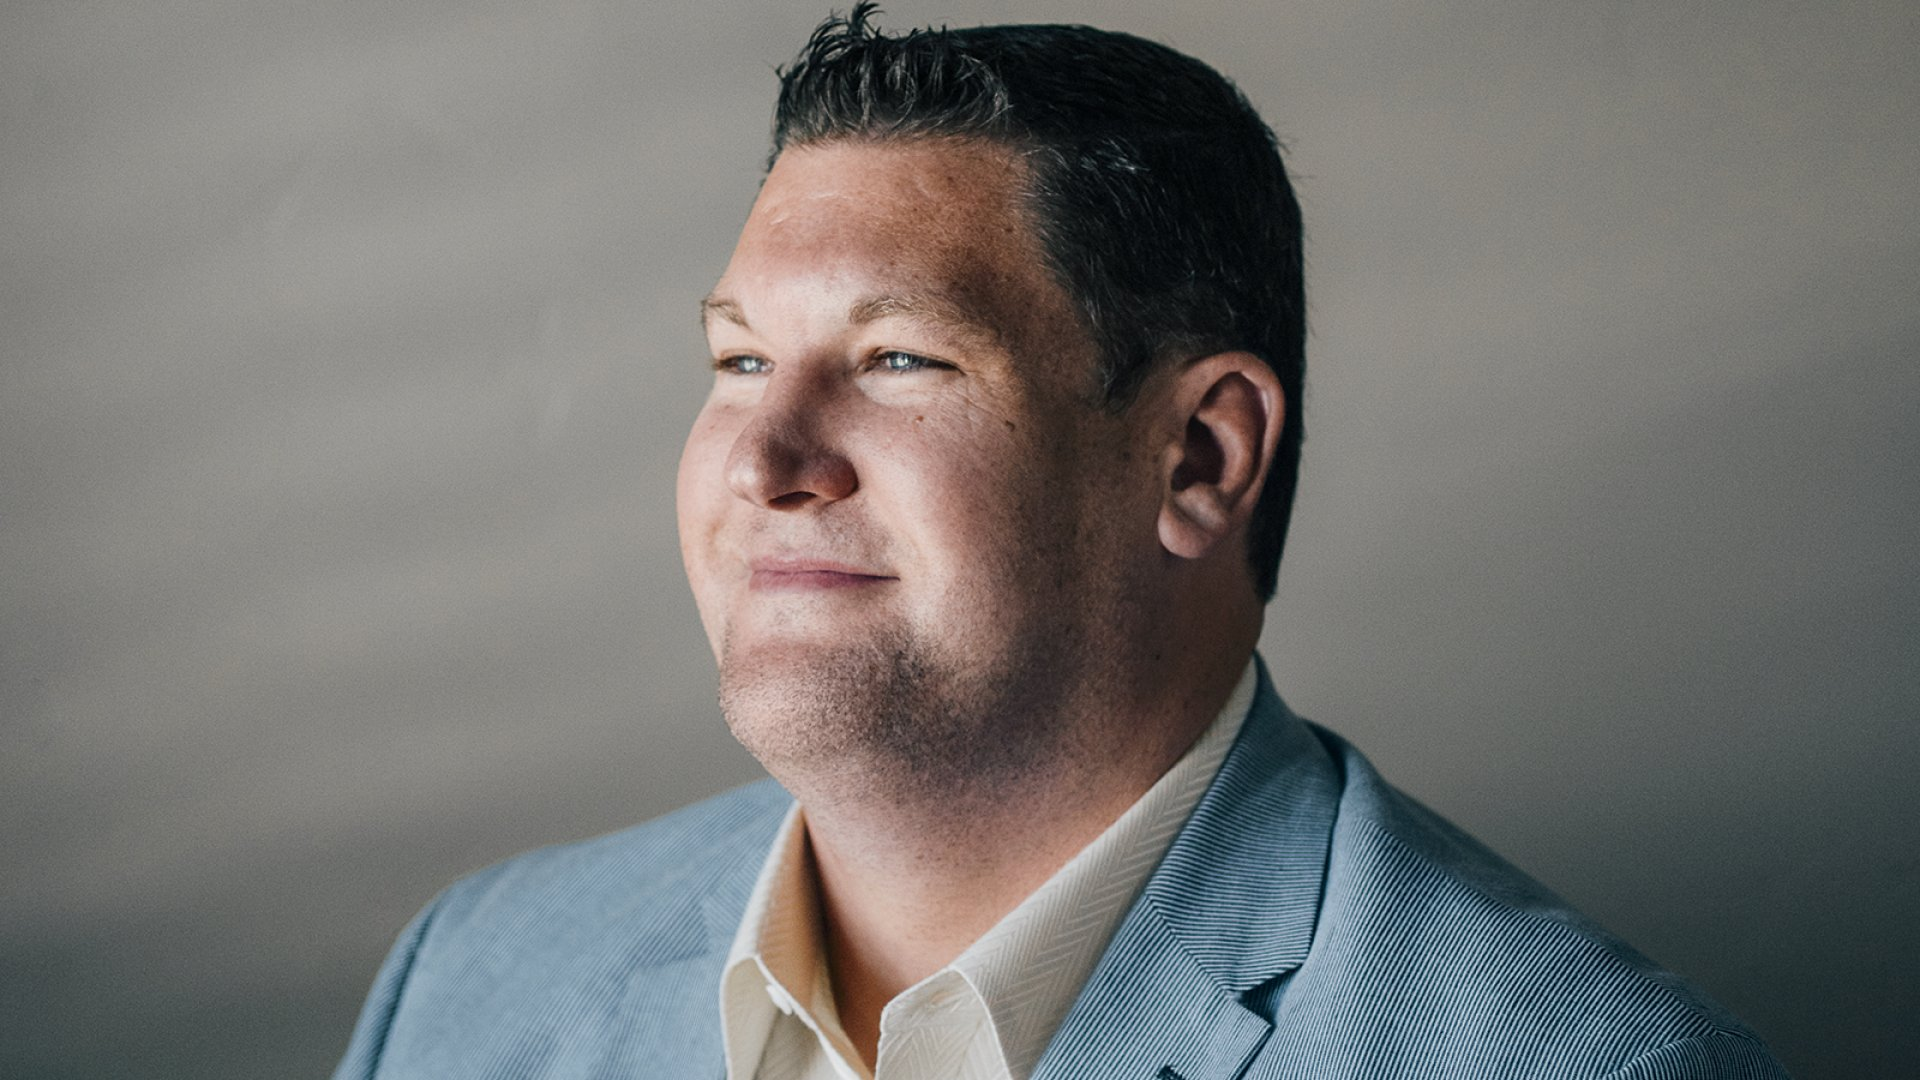 For a long time, Jake Shoff, co-founder of the Phoenix Recovery & Counseling Centers, seemed likely to become a construction mogul. The addiction and suicide of his troubled business partner took him onto a very different path.